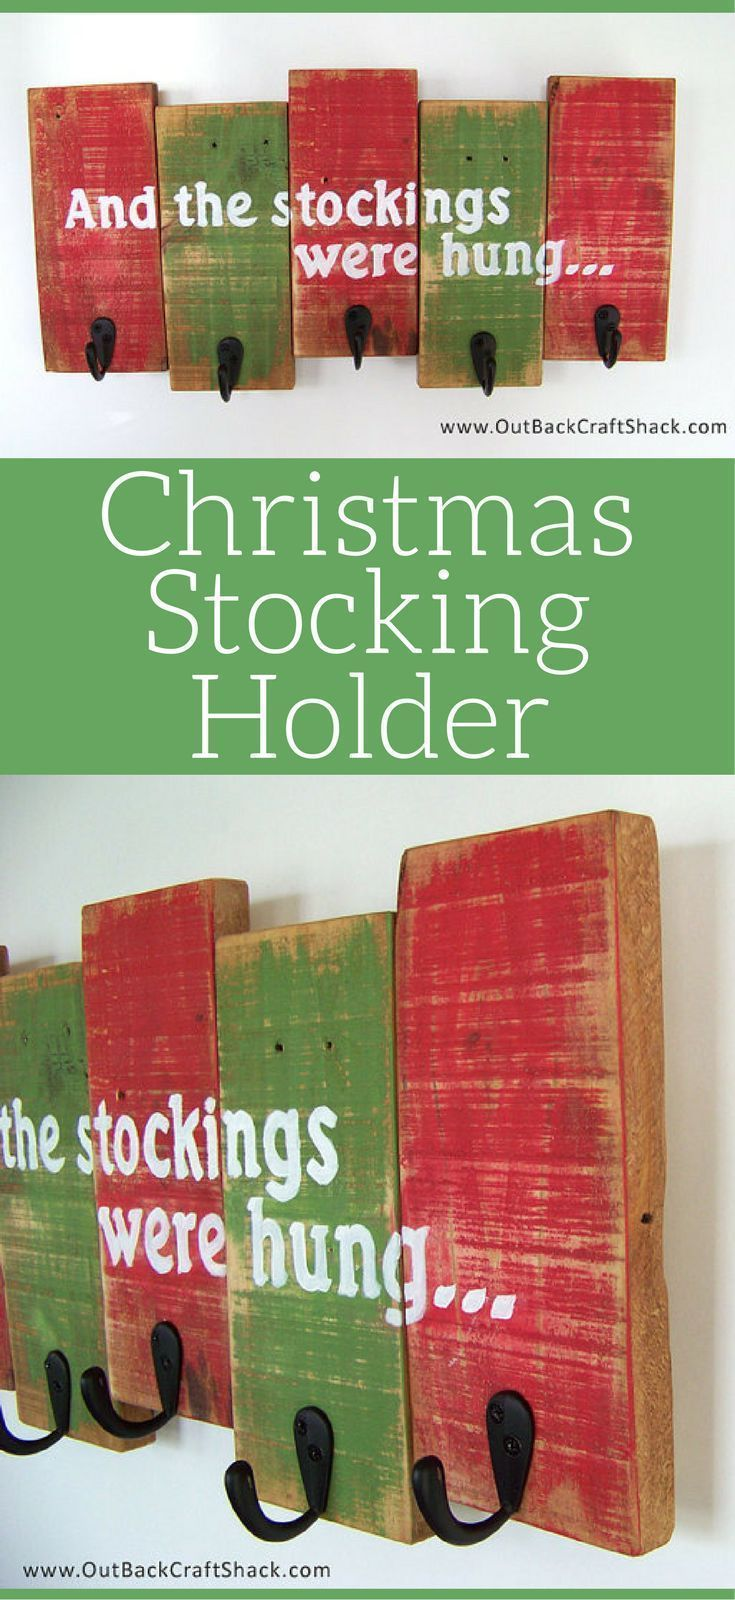 I LOVE THIS Christmas stocking holder!! Perfect amount of rusticChristmas charm... but also super functional for those that don't have a mantle to hang Christmas stockings! Rustic Christmas Decor, Stocking Hanger, Christmas Decorations, Holiday Decor #ad